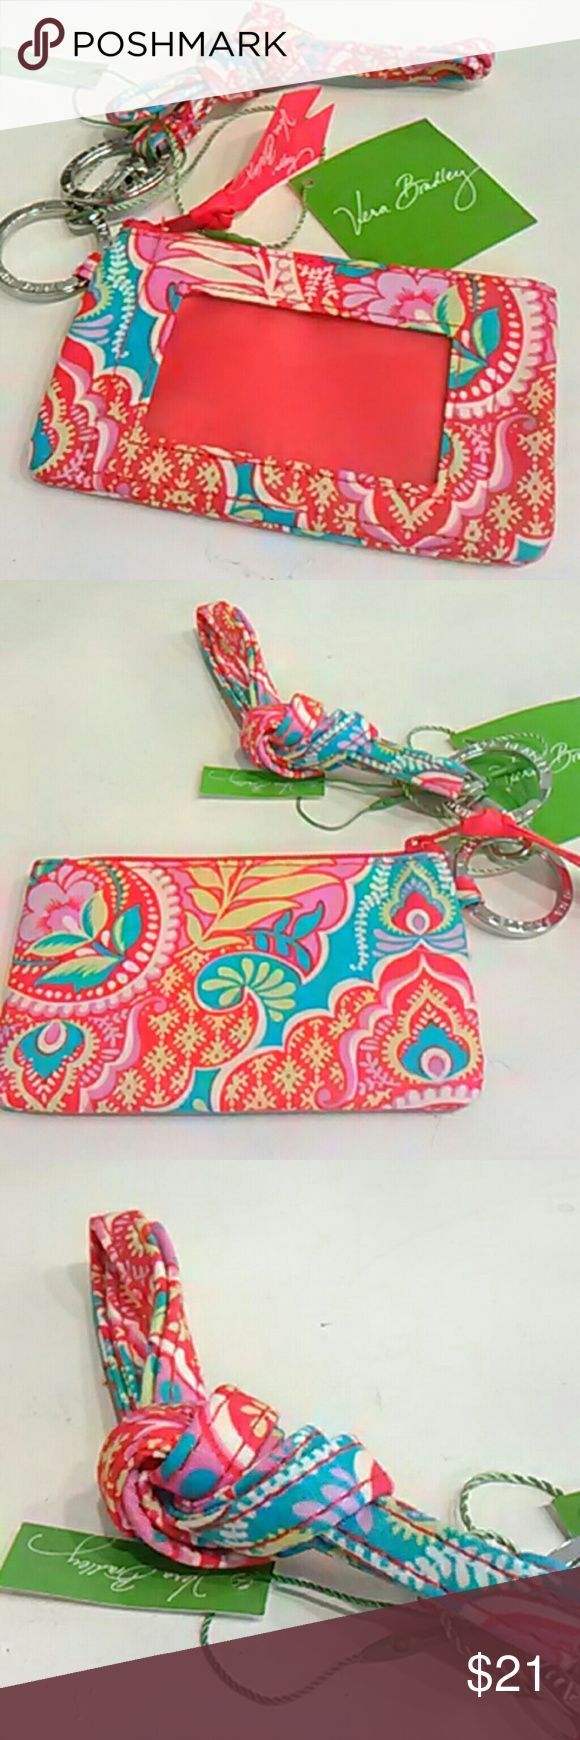 27 best Vera Bradley images on Pinterest | Key chains, Key fobs and ...